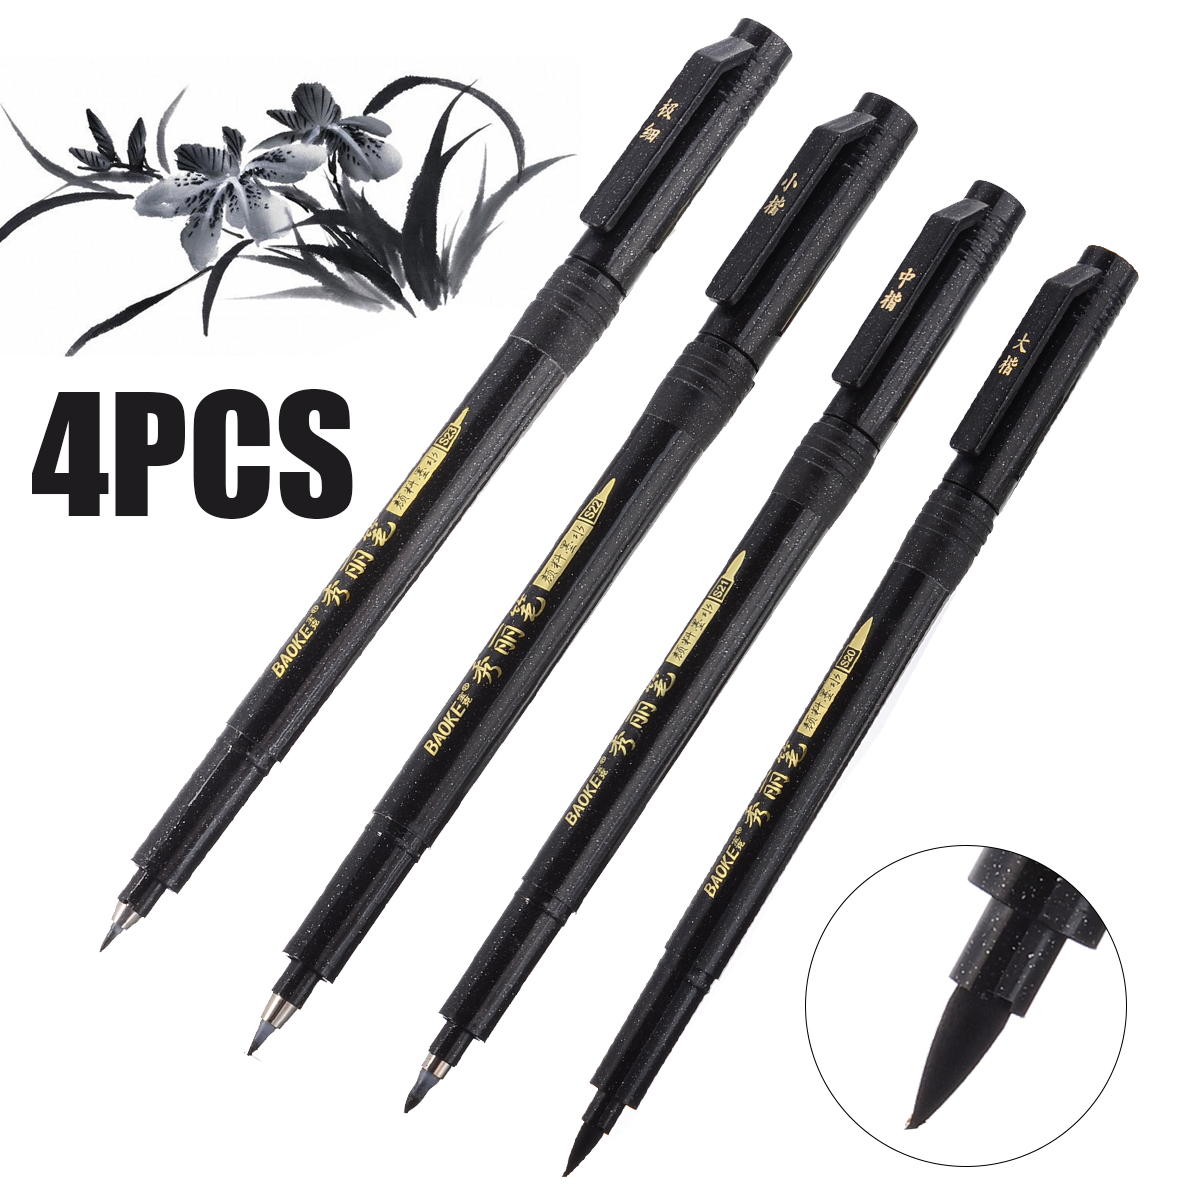 4pcs Kid Writing DIY Art Shodo Brush Ink Pen New Japanese Chinese Calligraphy Pen Painting School Office Writing Tool